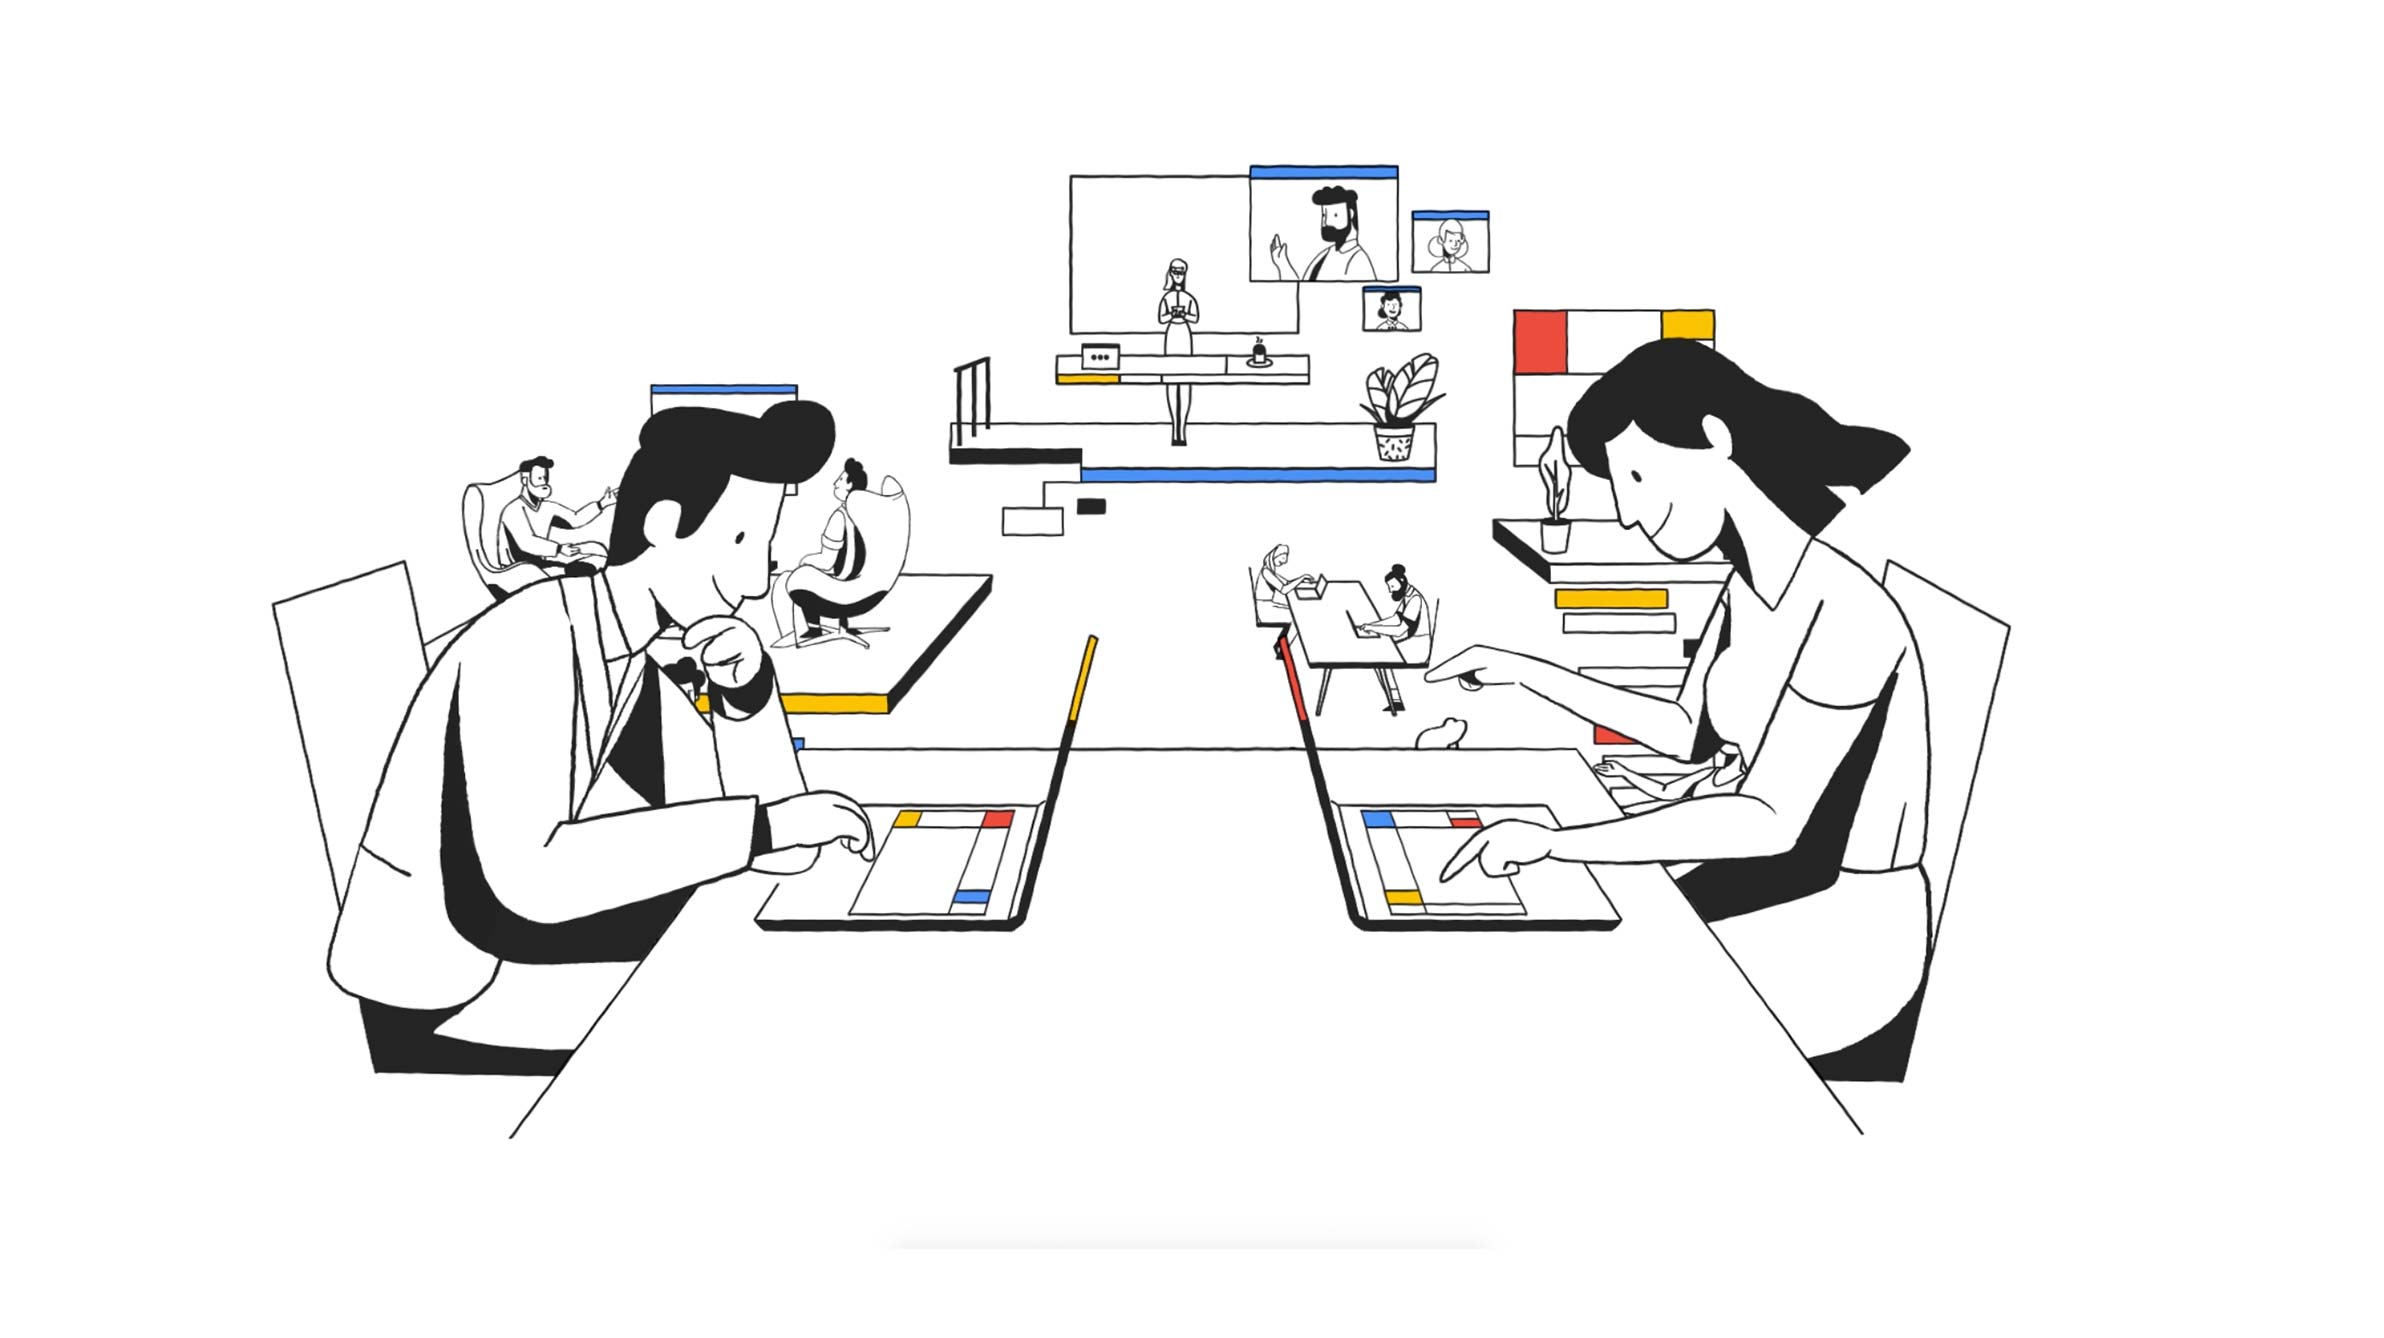 resell g-suite at scale